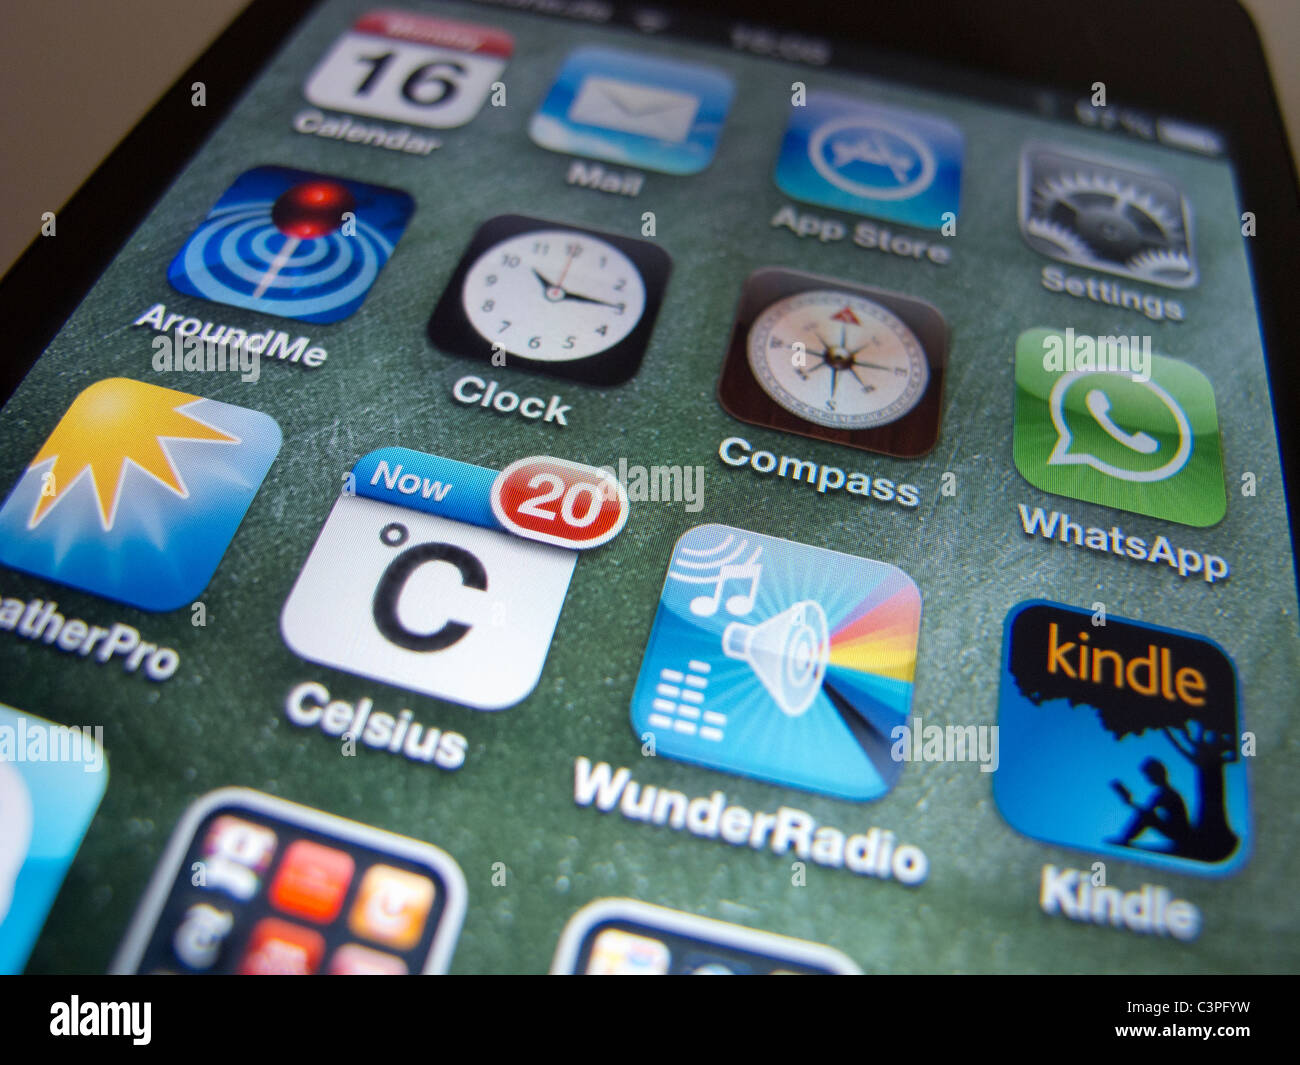 close-up of apps on an Apple iPhone 4G smart phone Stock